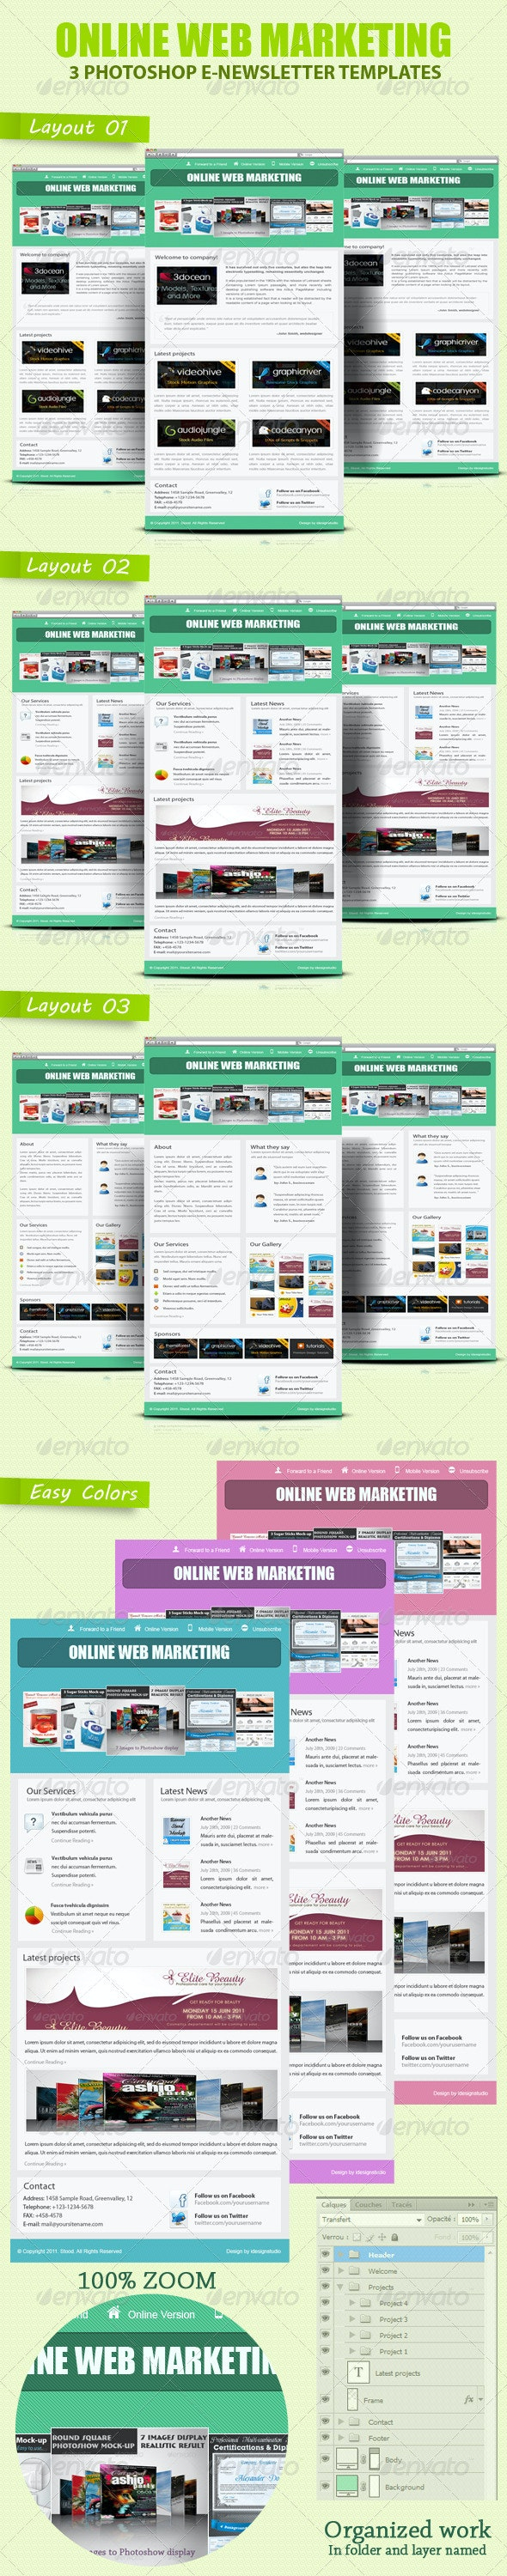 Professional Online Web Marketing